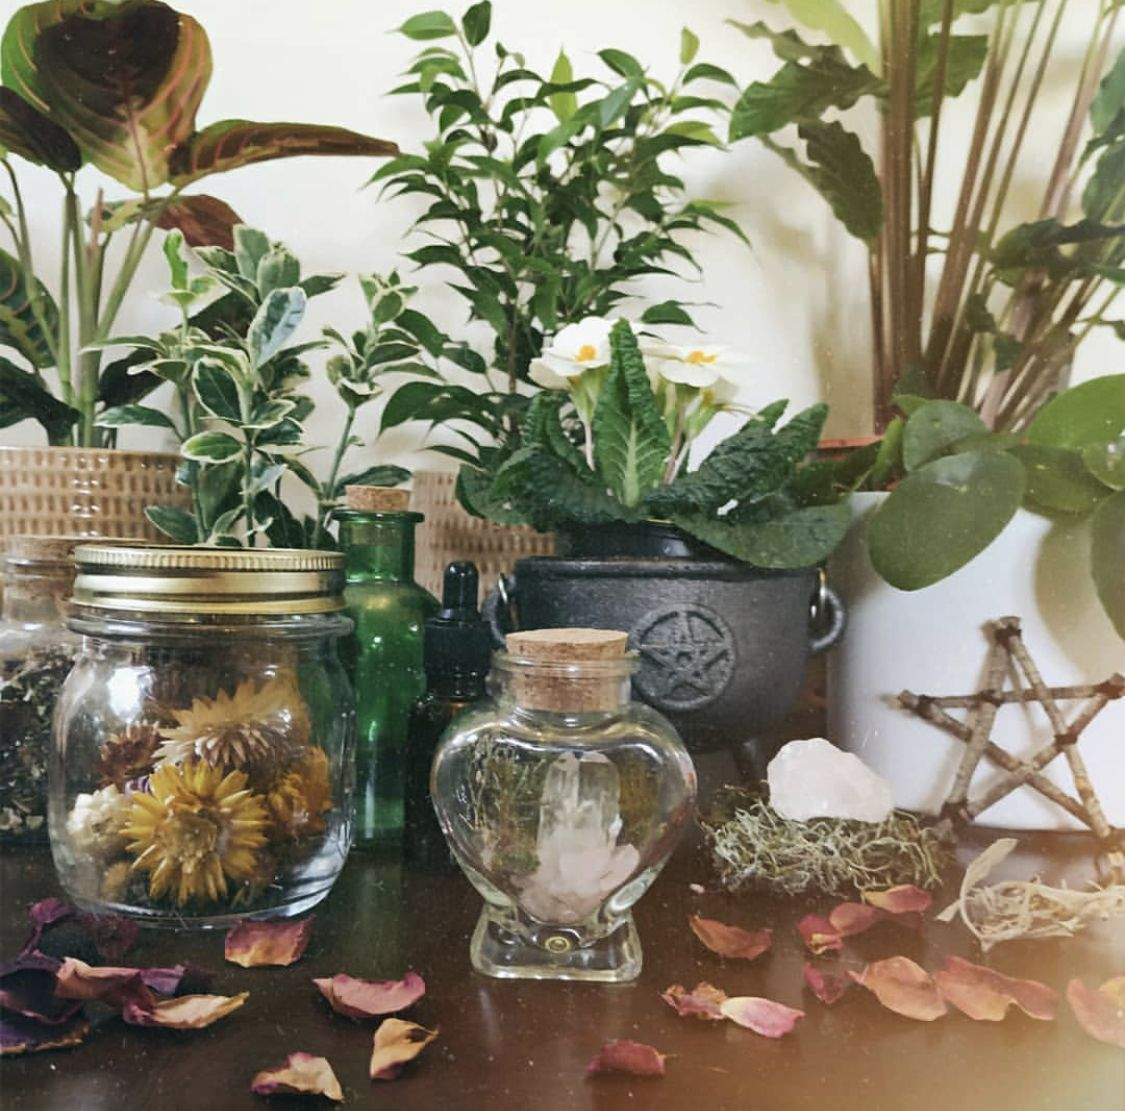 Witchcore-Herbs Plants and Jars.jpg